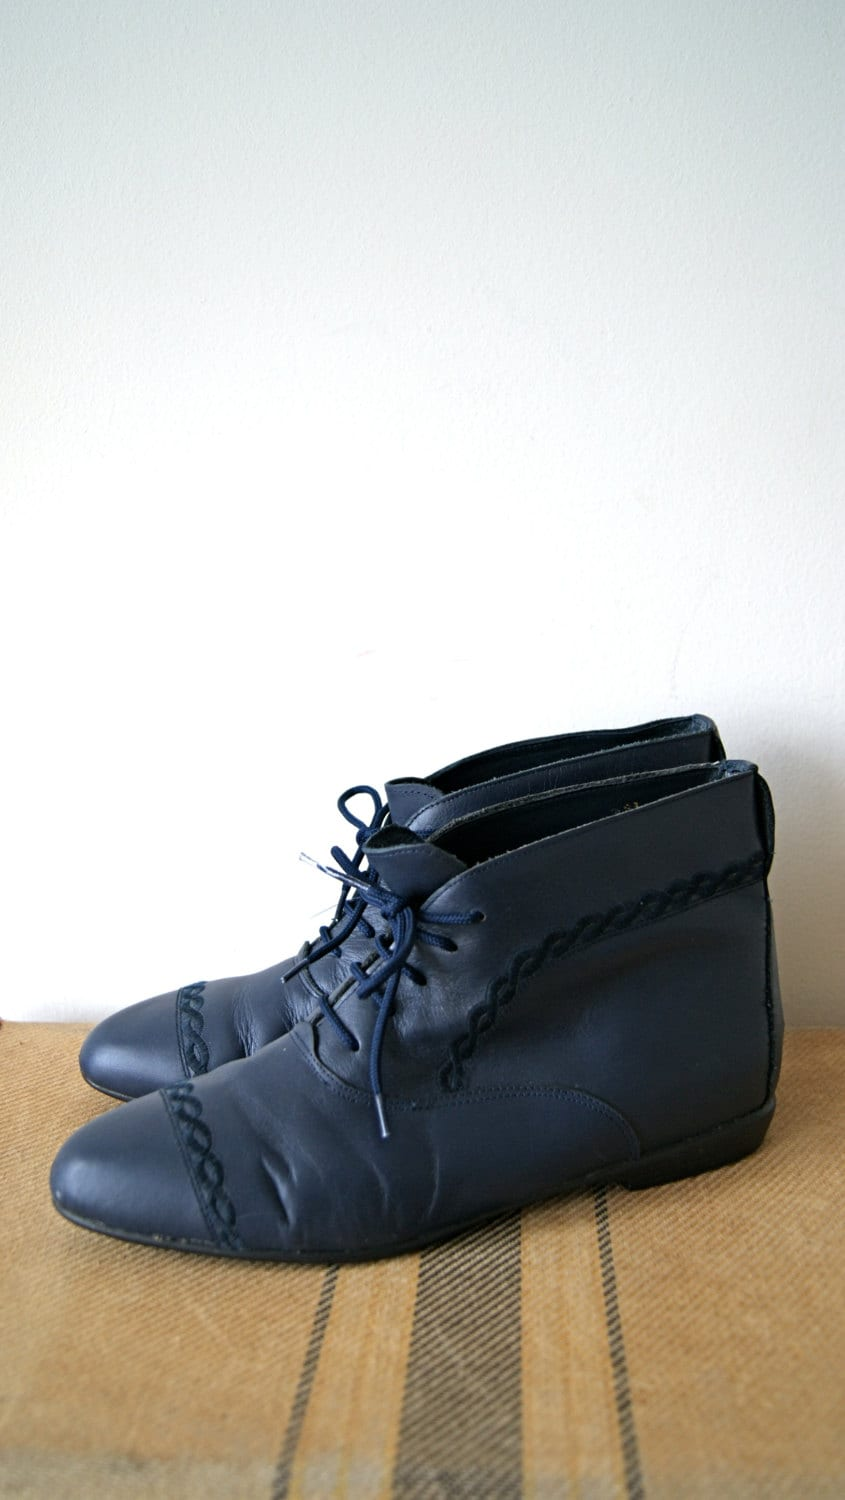 vintage ankle boots 90s navy blue leather lace up boots